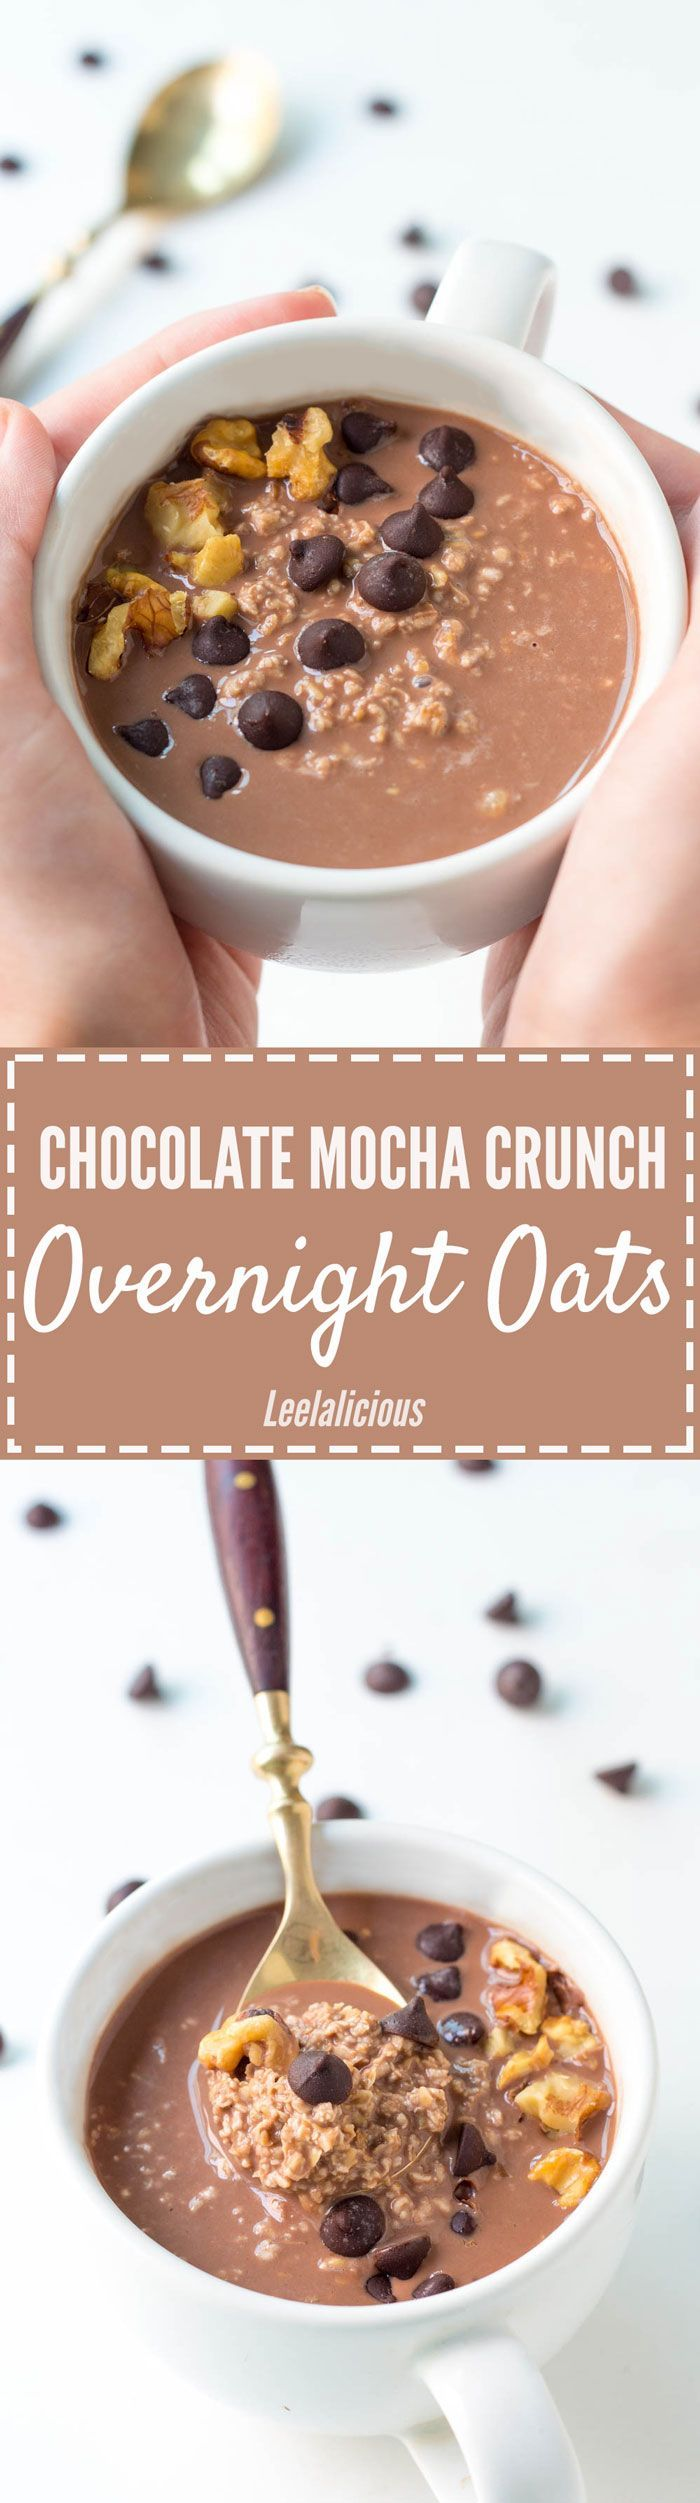 Best 20+ Chocolate overnight oats ideas on Pinterest | Healthy ...